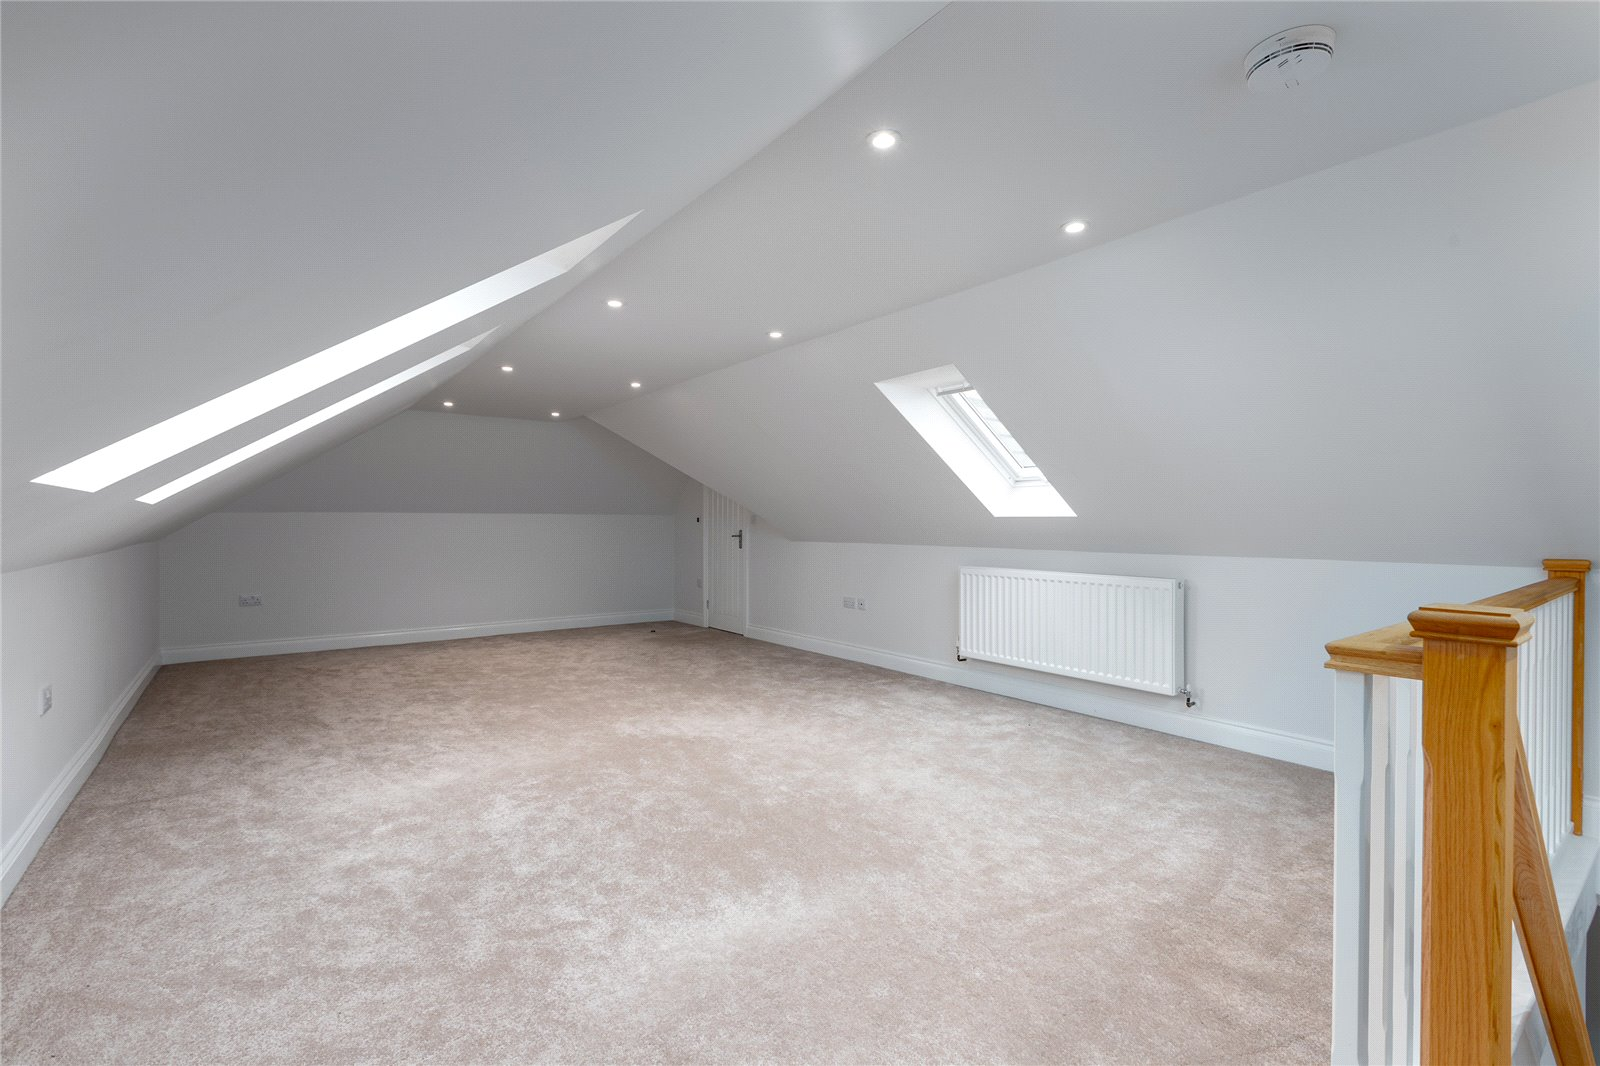 6 bed house for sale in Ladgate Lane, Middlesbrough  - Property Image 22